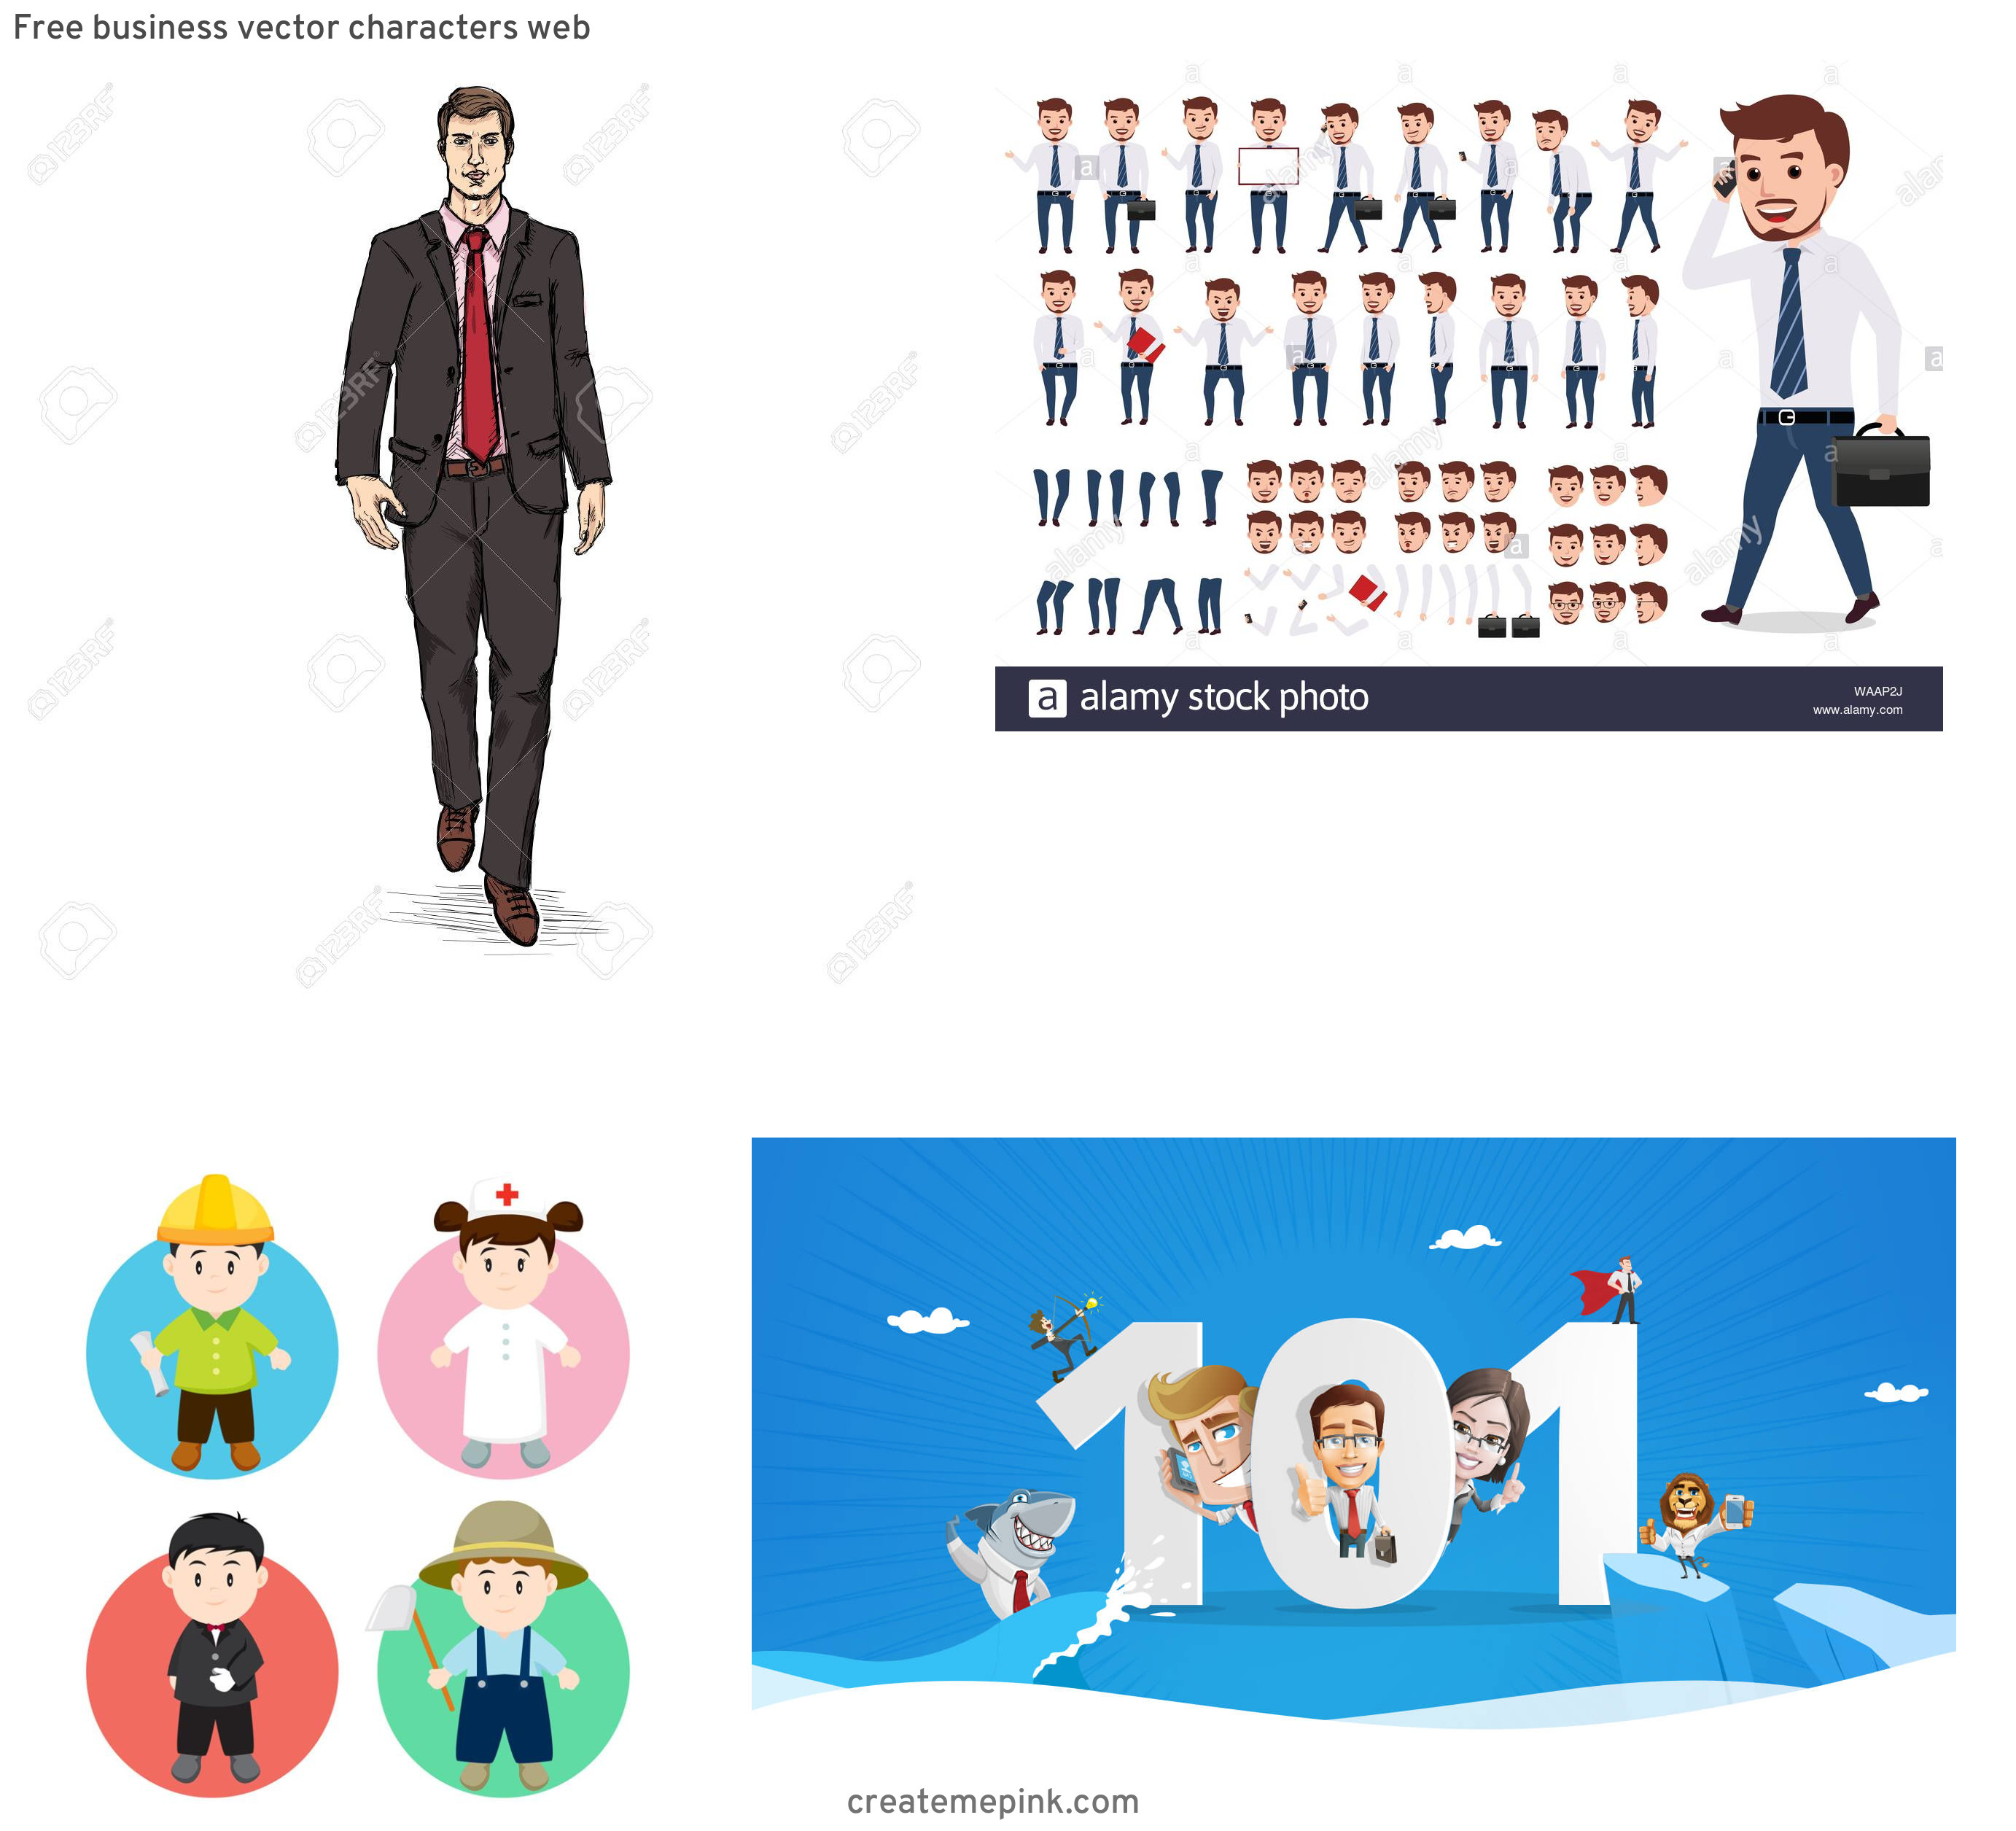 Vector Business Attire: Free Business Vector Characters Web